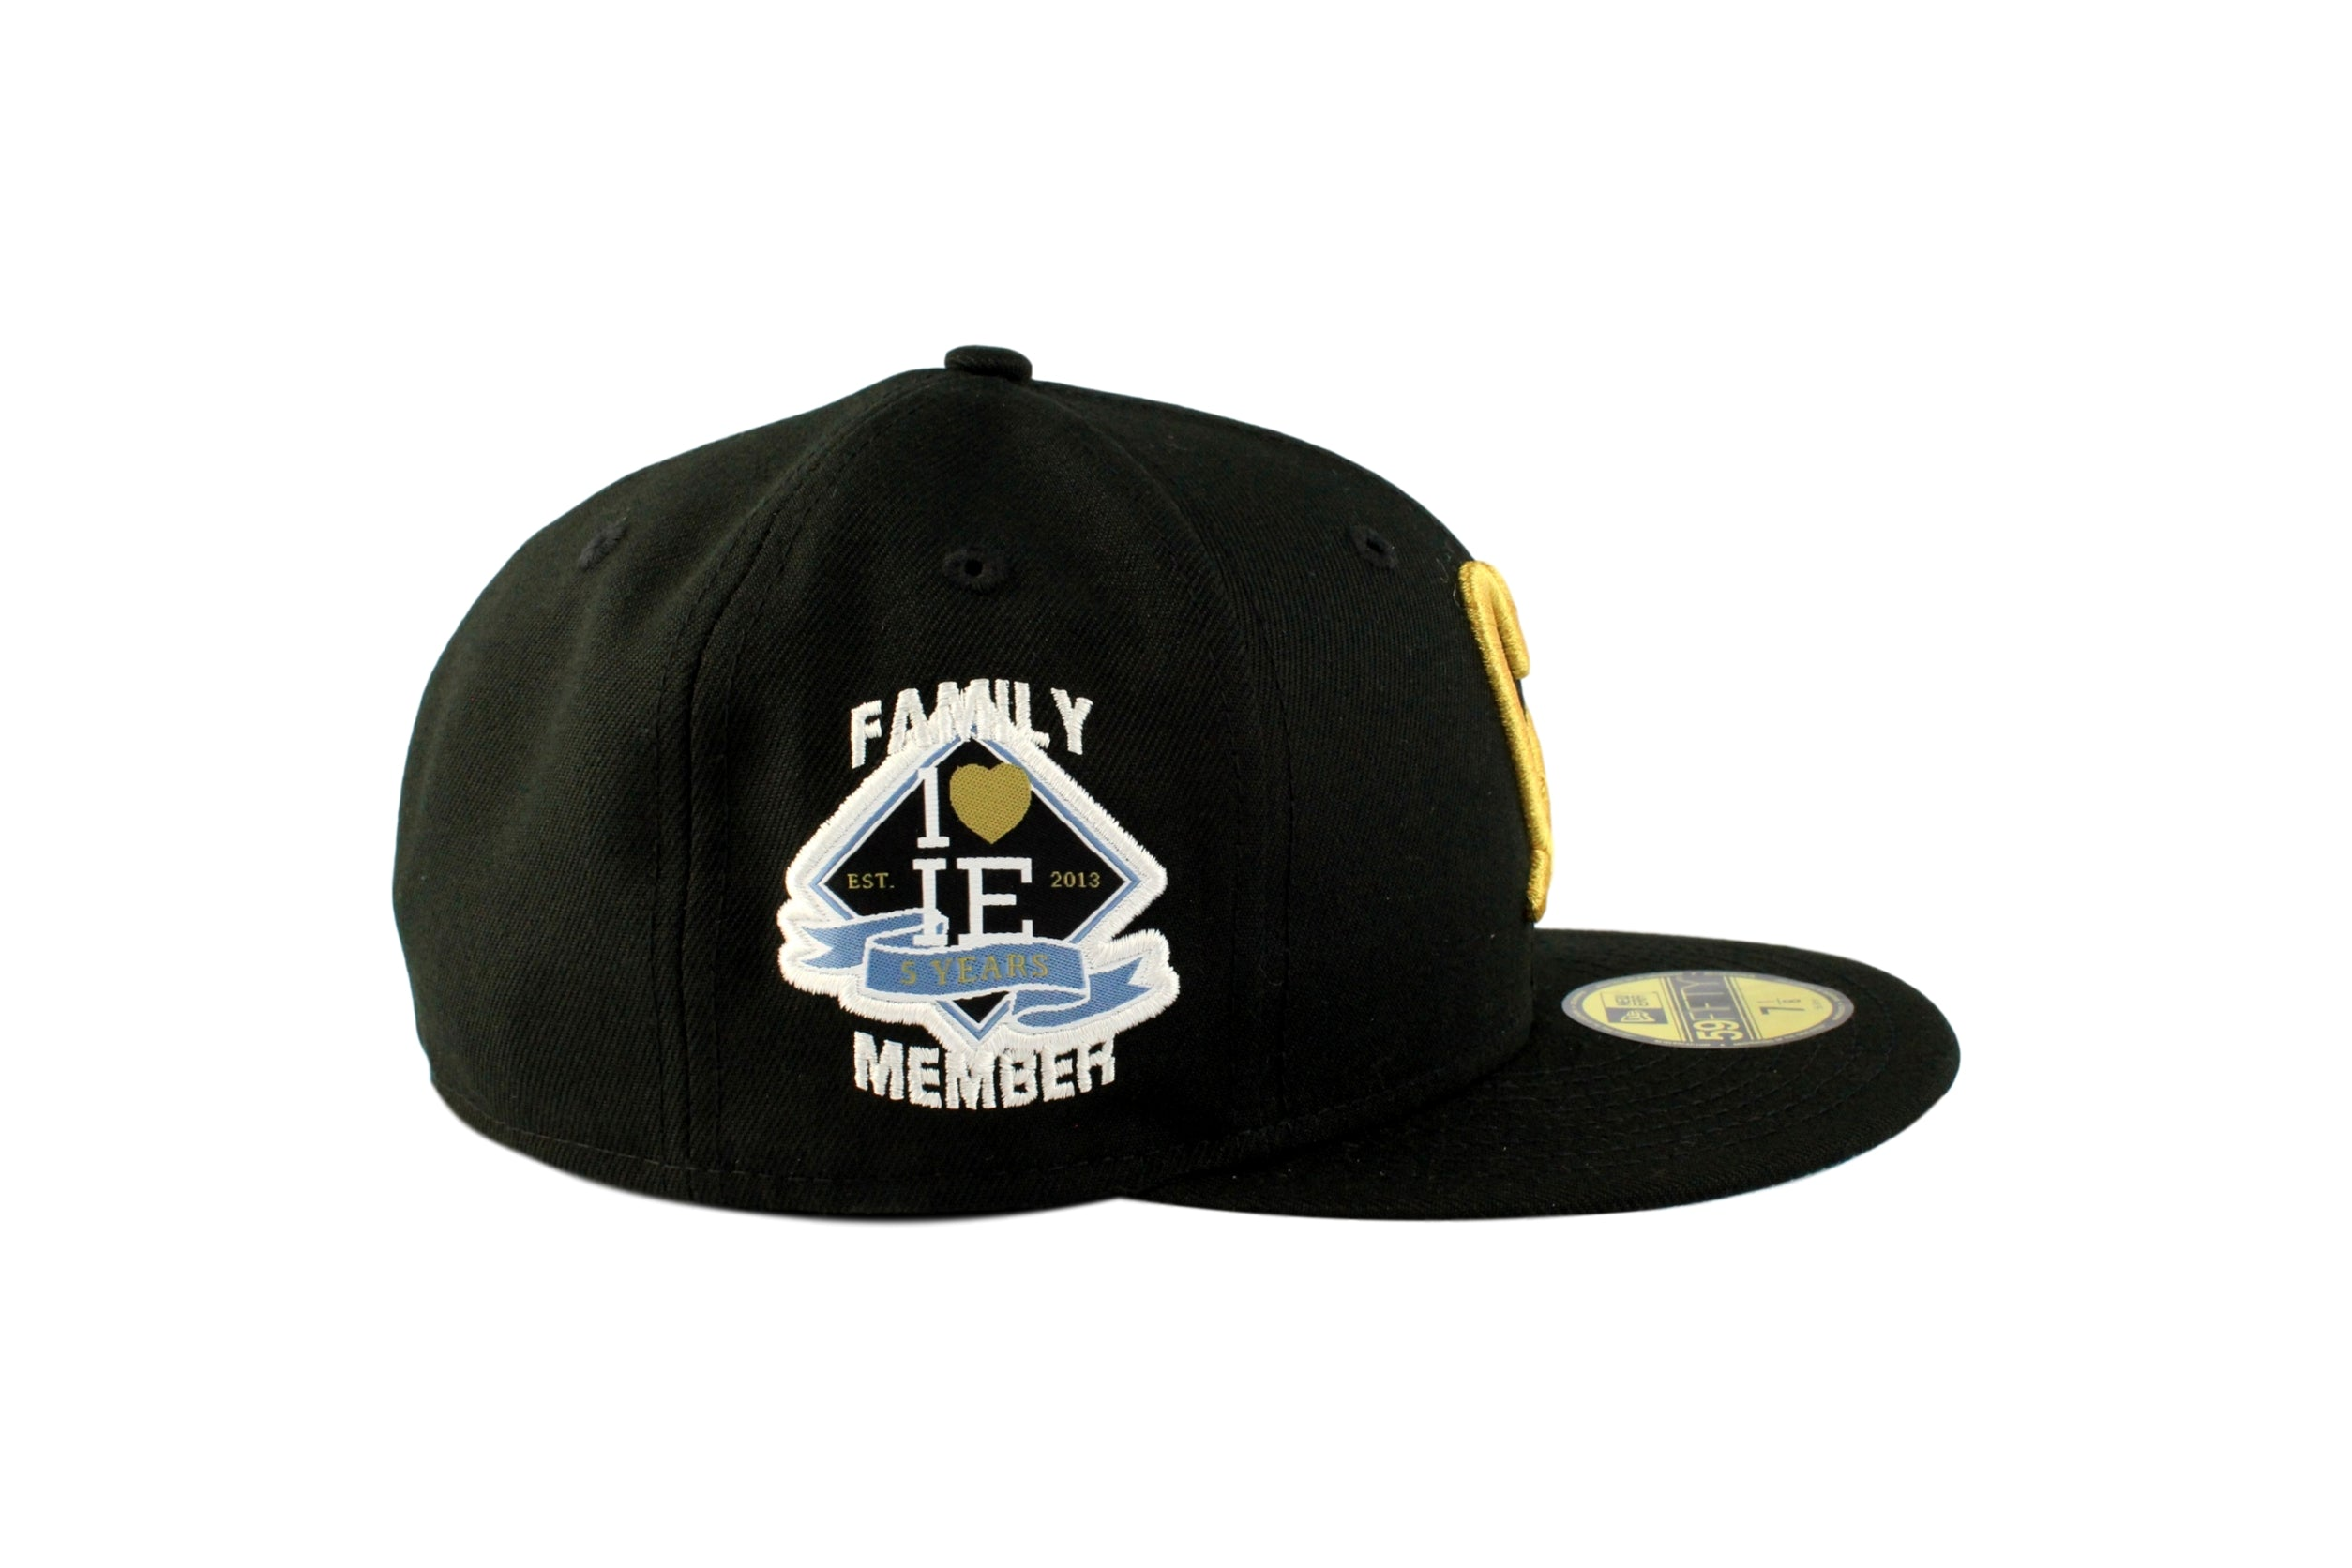 c9ae45ddf95 Limited Black   Gold 1LoveIE New Era 59FIFTY Fitted Cap